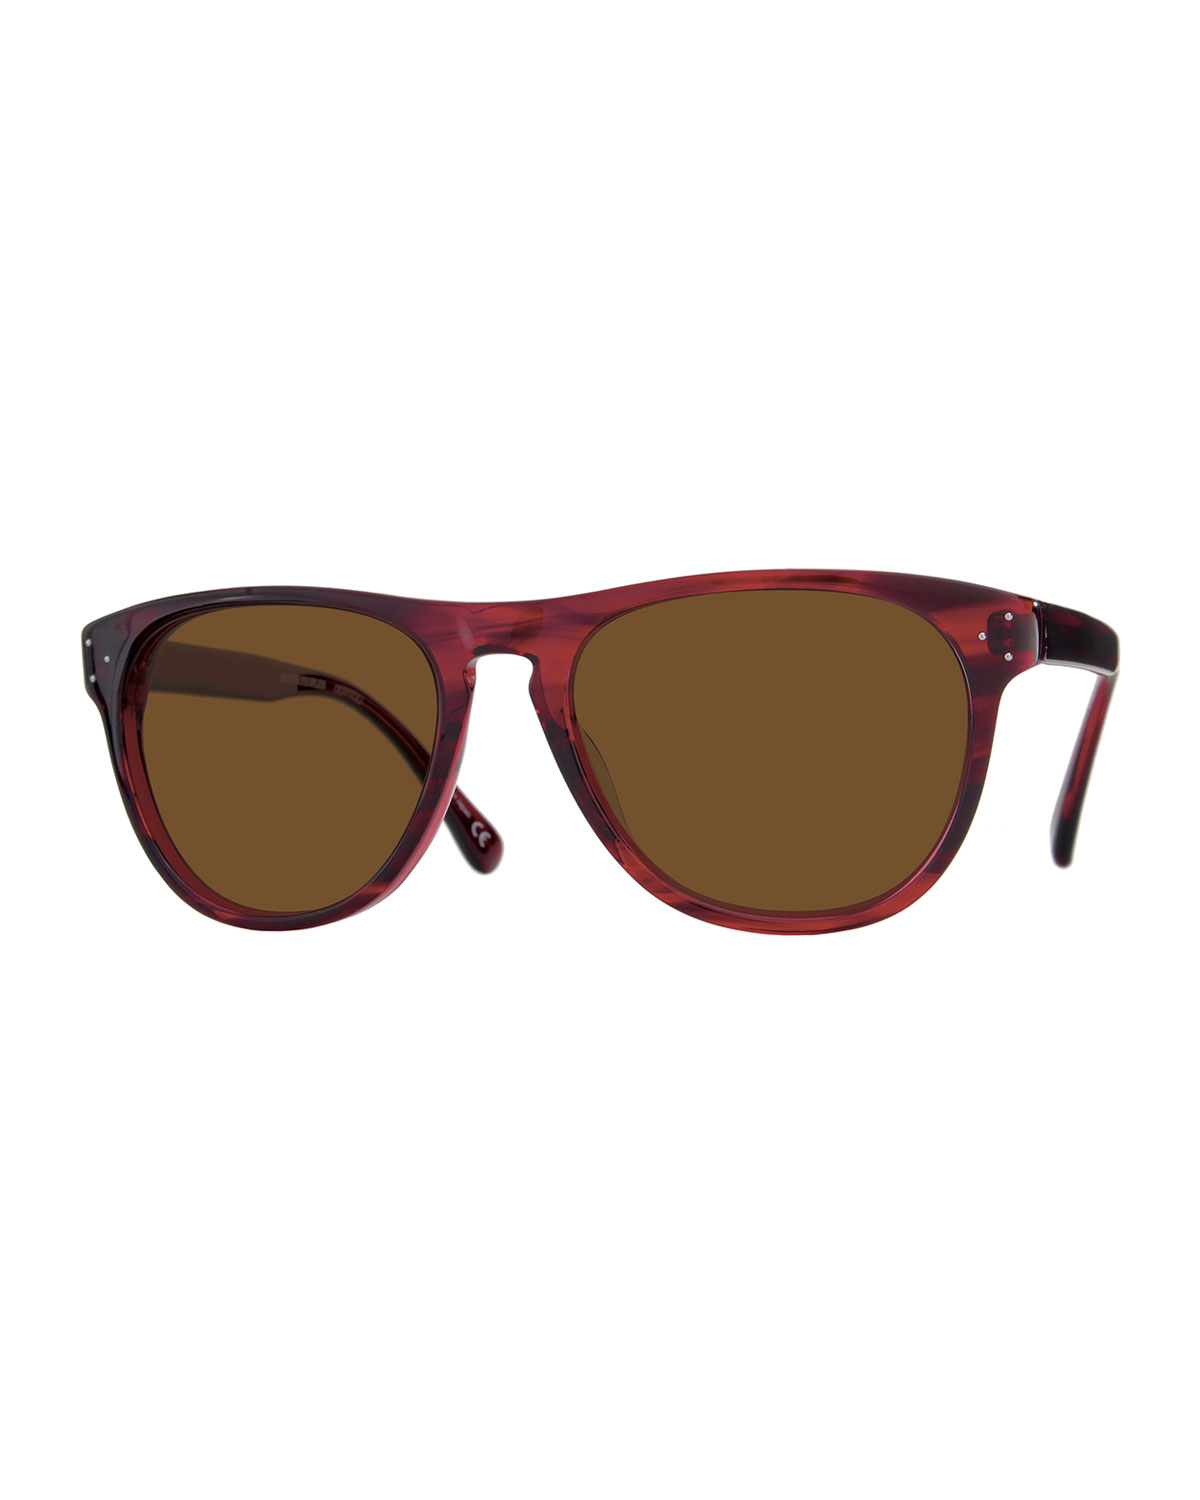 ad6657706d Lyst - Oliver Peoples Daddy Oversize Square Sunglasses in Red